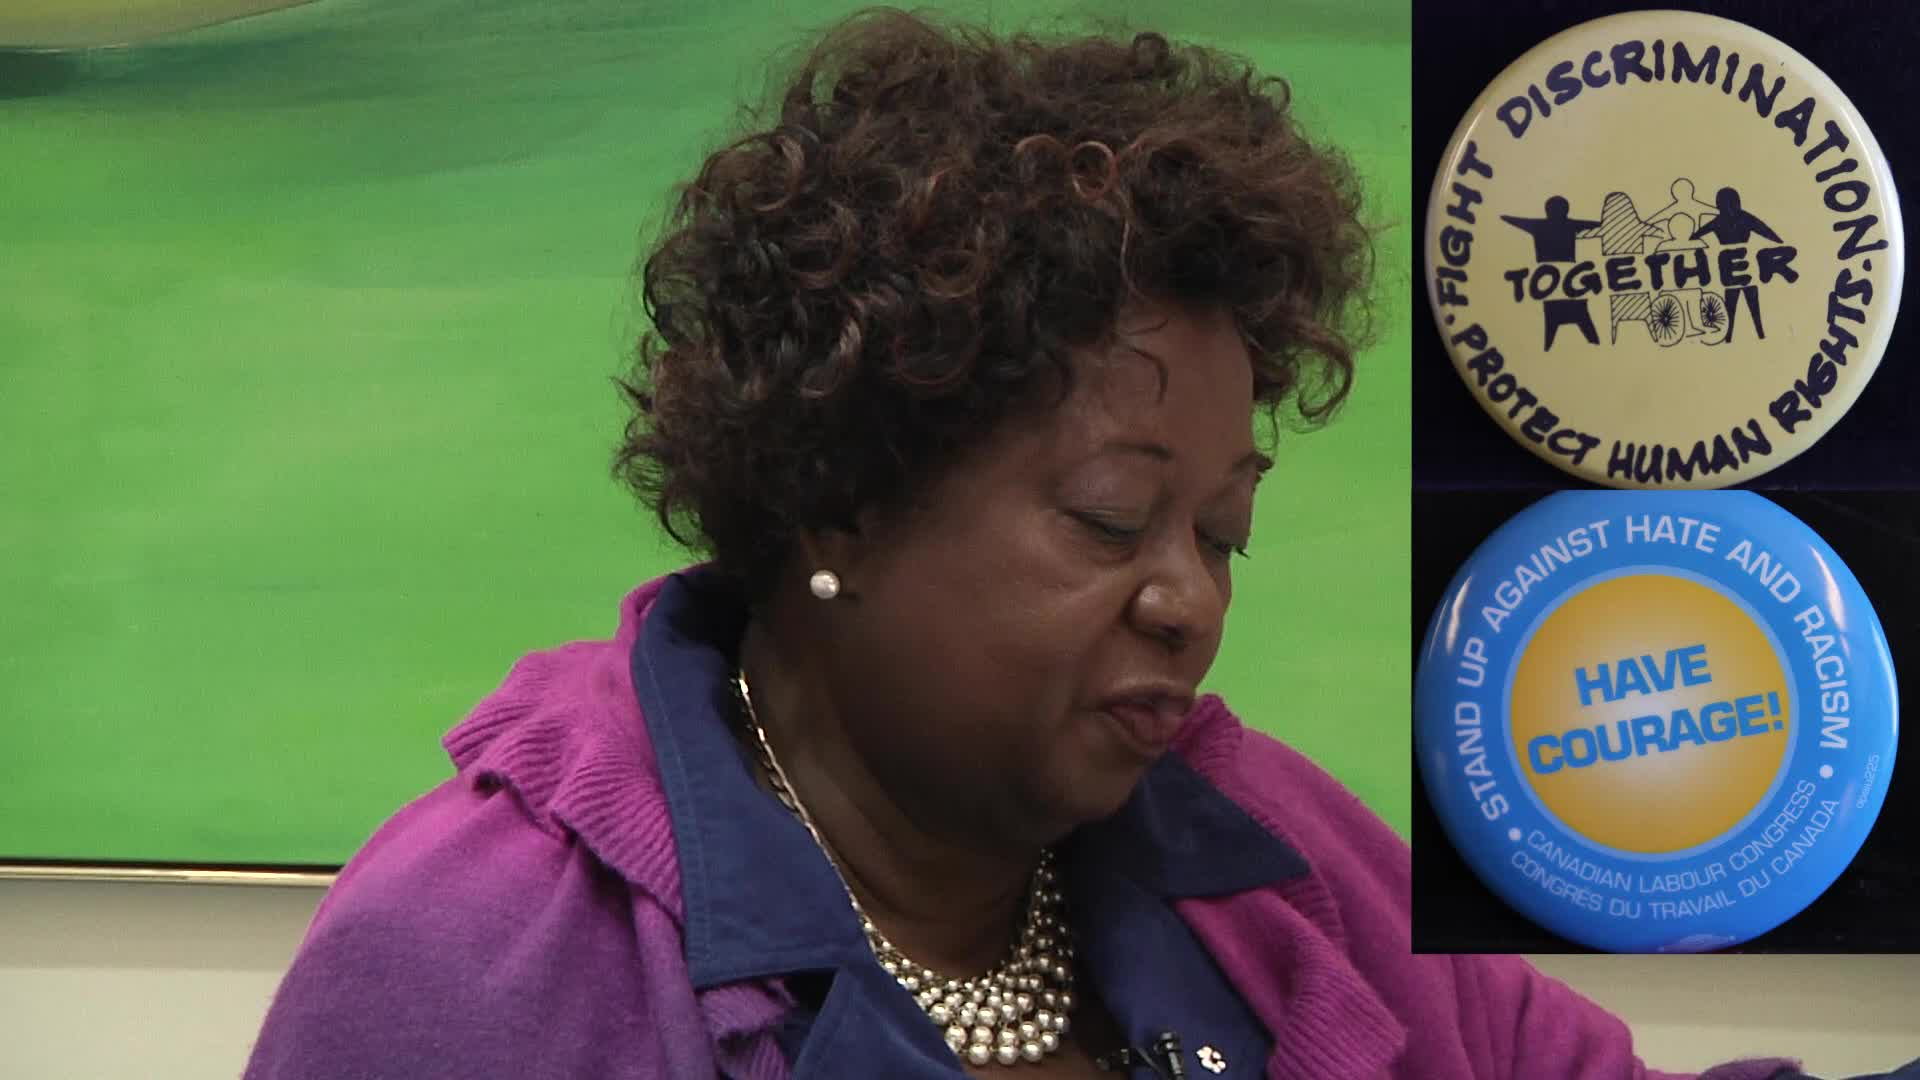 Jean Augustine interview: Anti-discrimination buttons